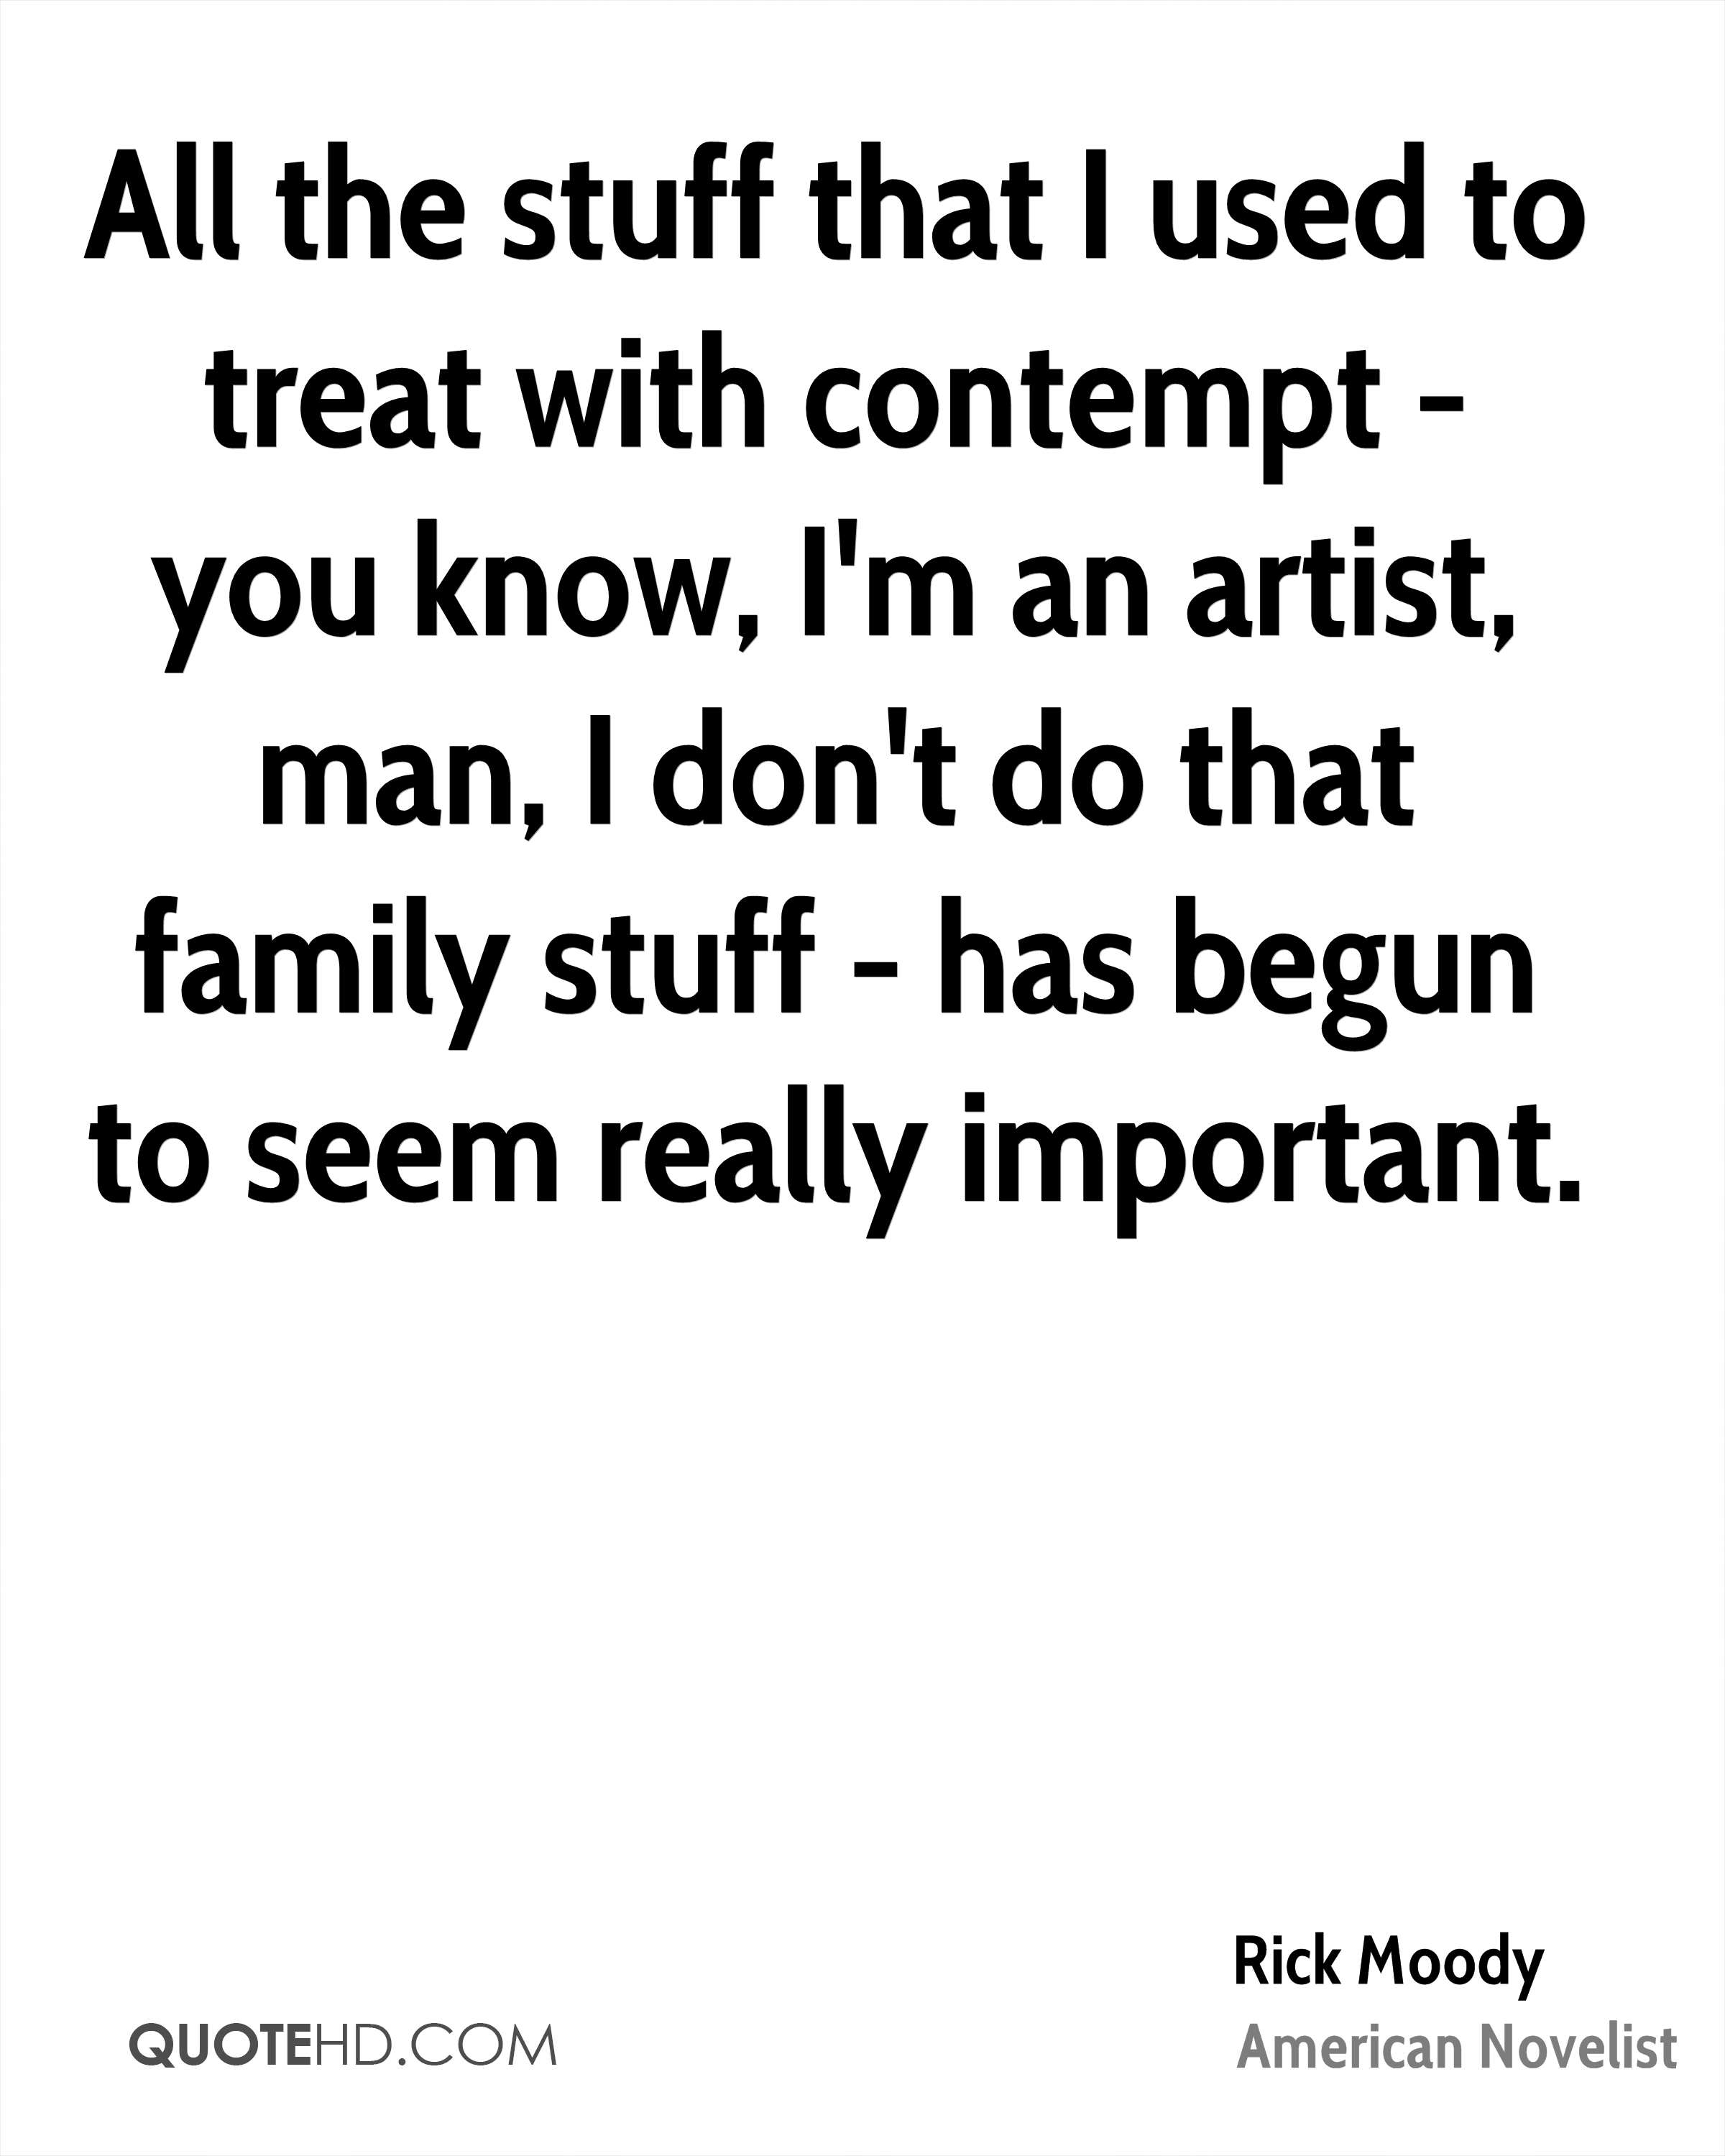 All the stuff that I used to treat with contempt - you know, I'm an artist, man, I don't do that family stuff - has begun to seem really important.